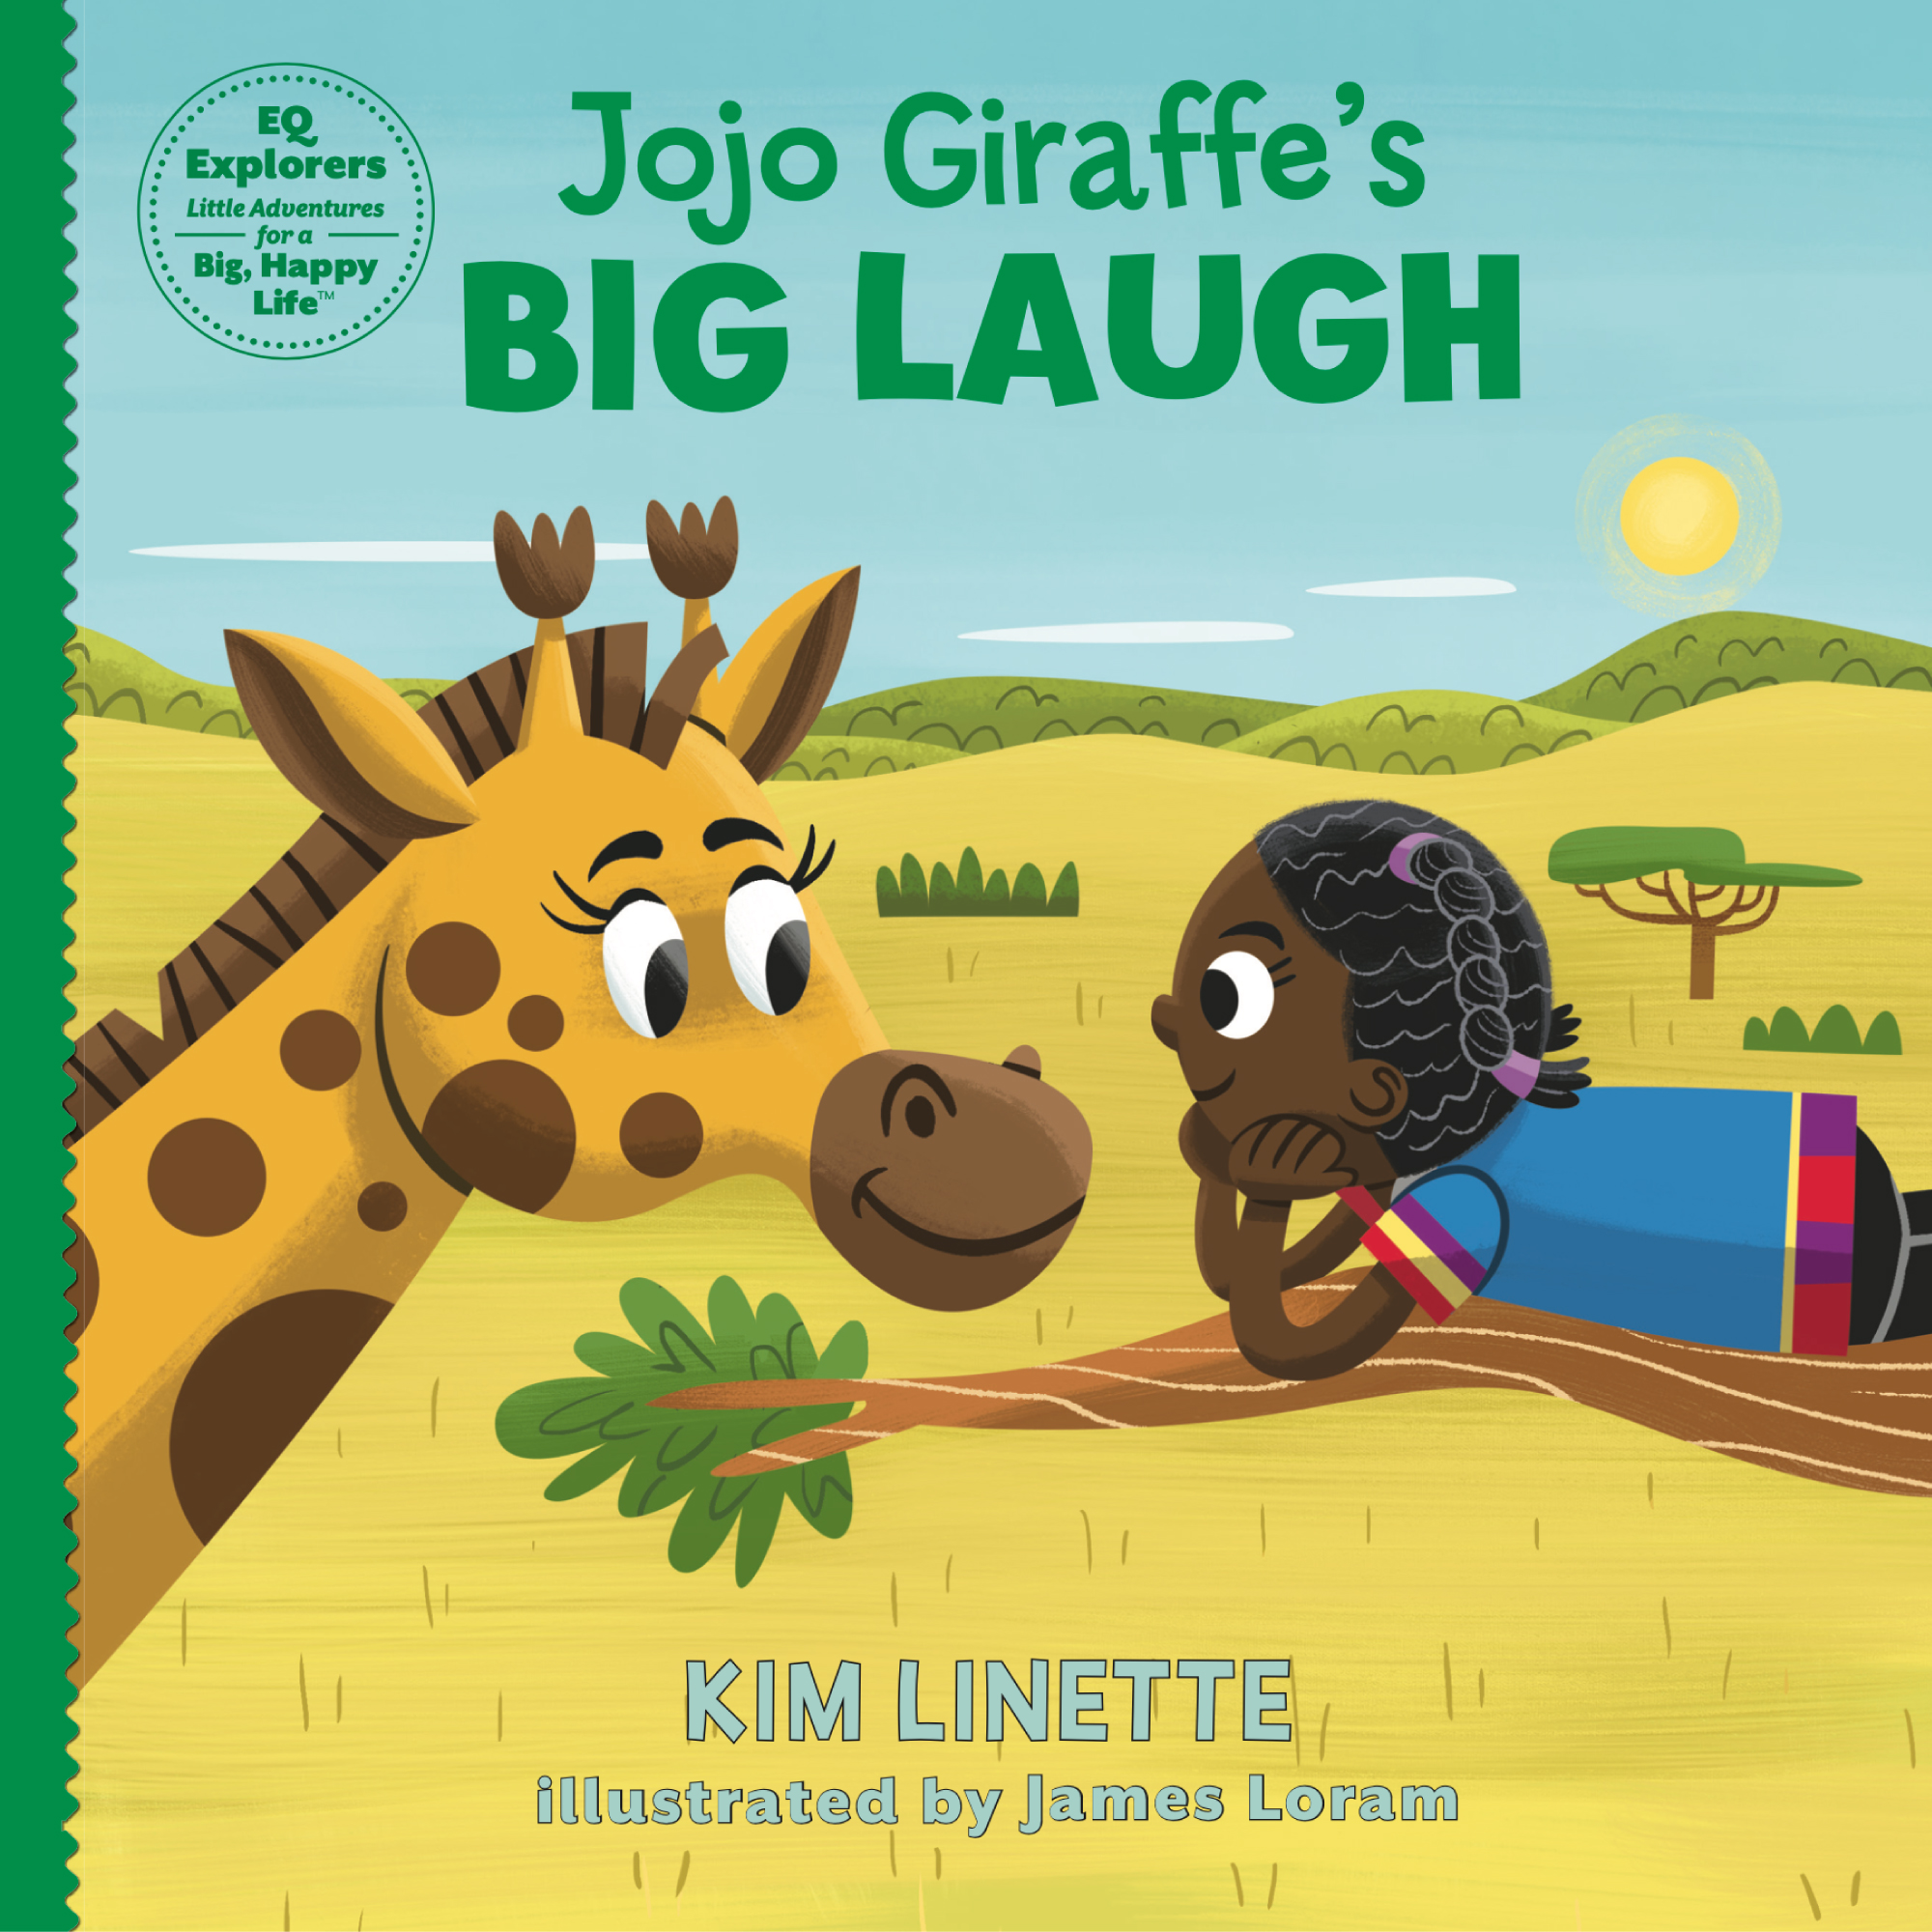 Jojo Giraffe's Big Laugh. An adventurous children's story to teach kids about emotional intelligence, bullying and what it means to be unique. (EQ Explorers Book Series)